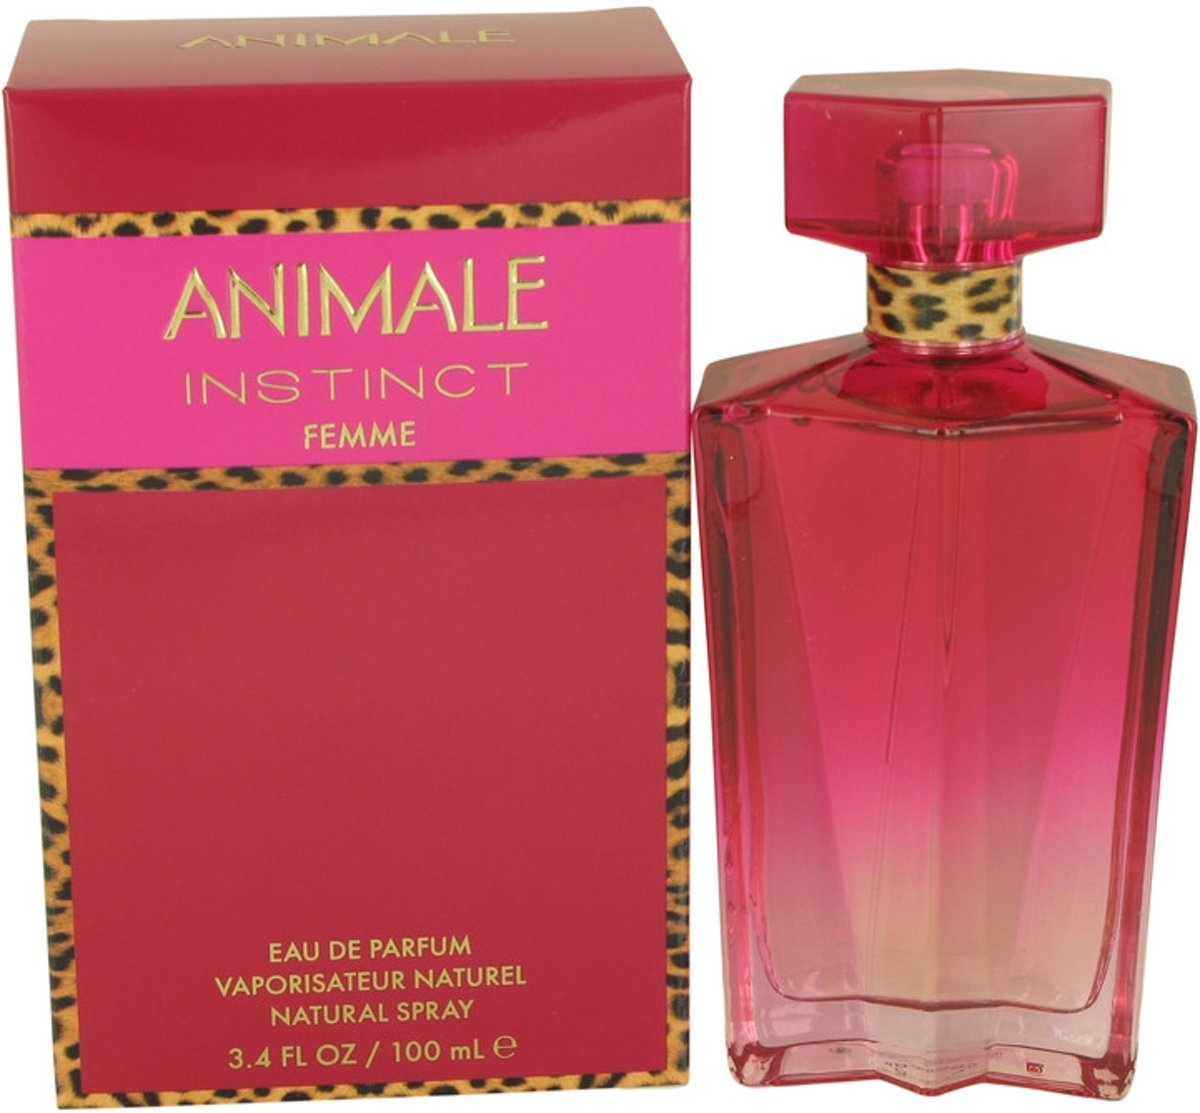 Animale Instinct eau de parfum spray 100 ml